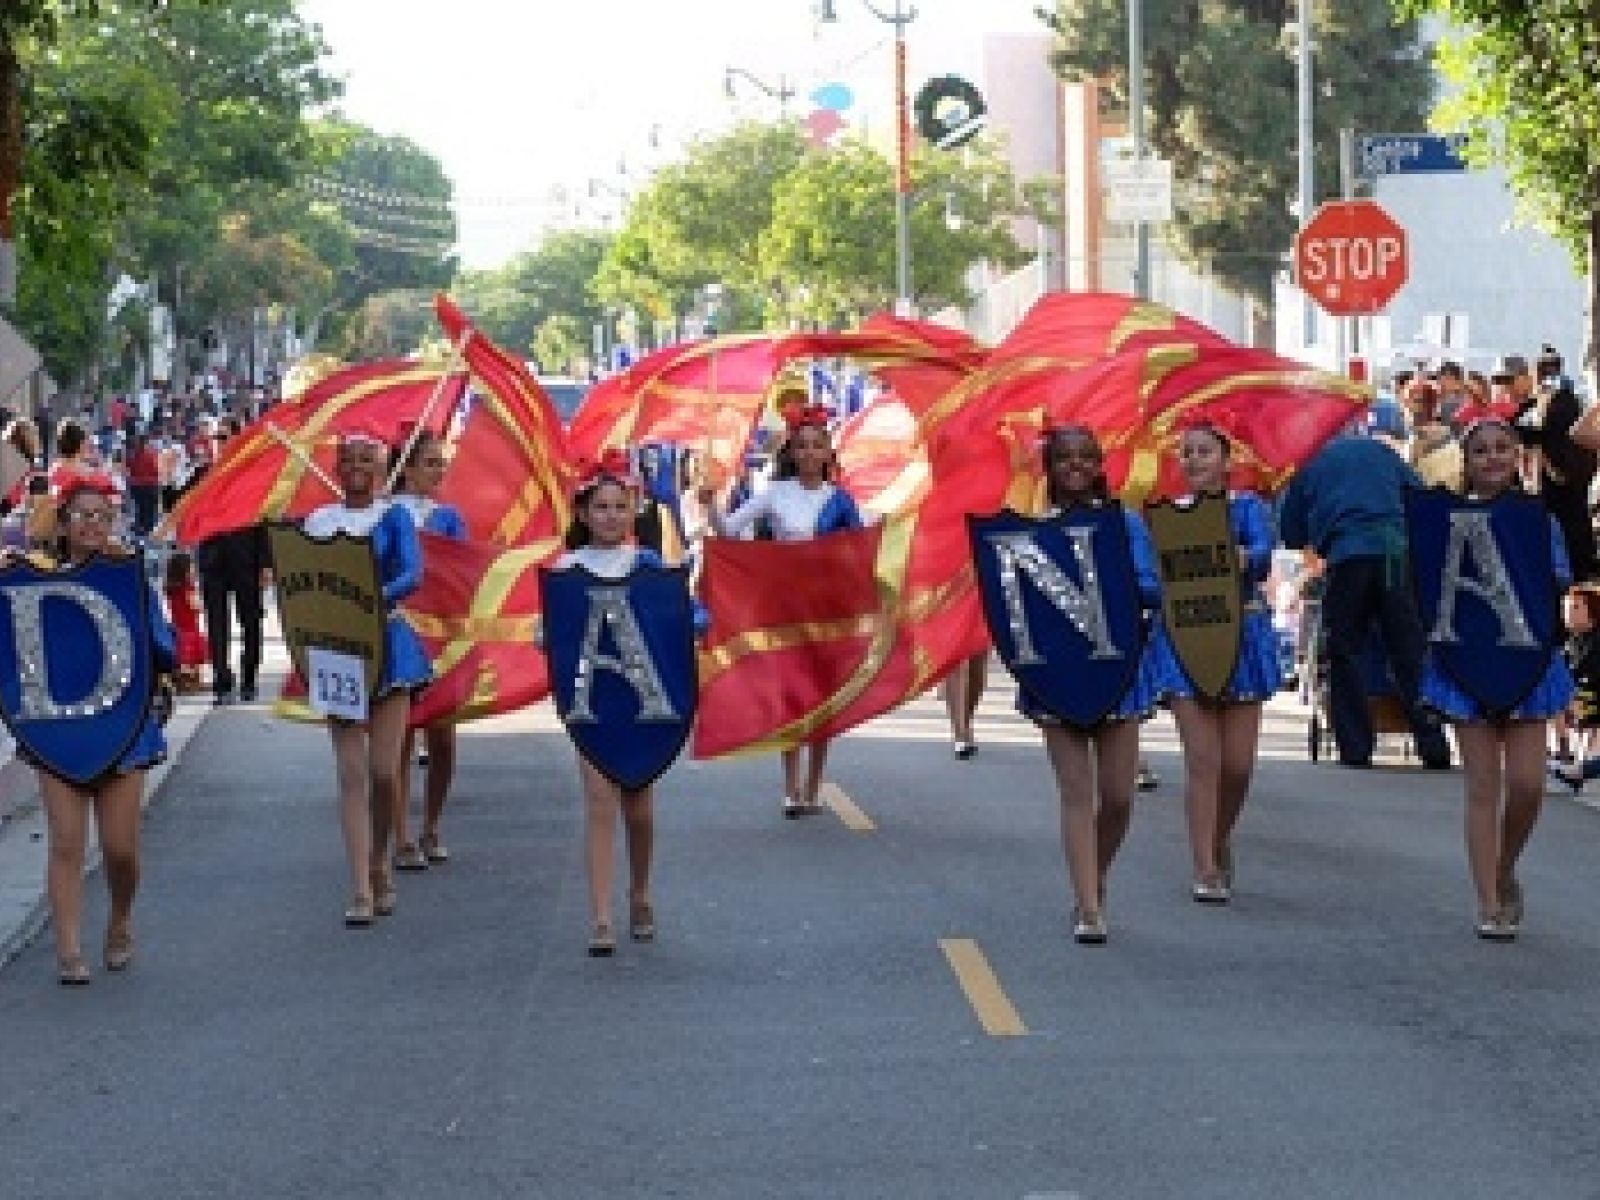 Main image for event titled 39th Annual Spirit of San Pedro Holiday Parade